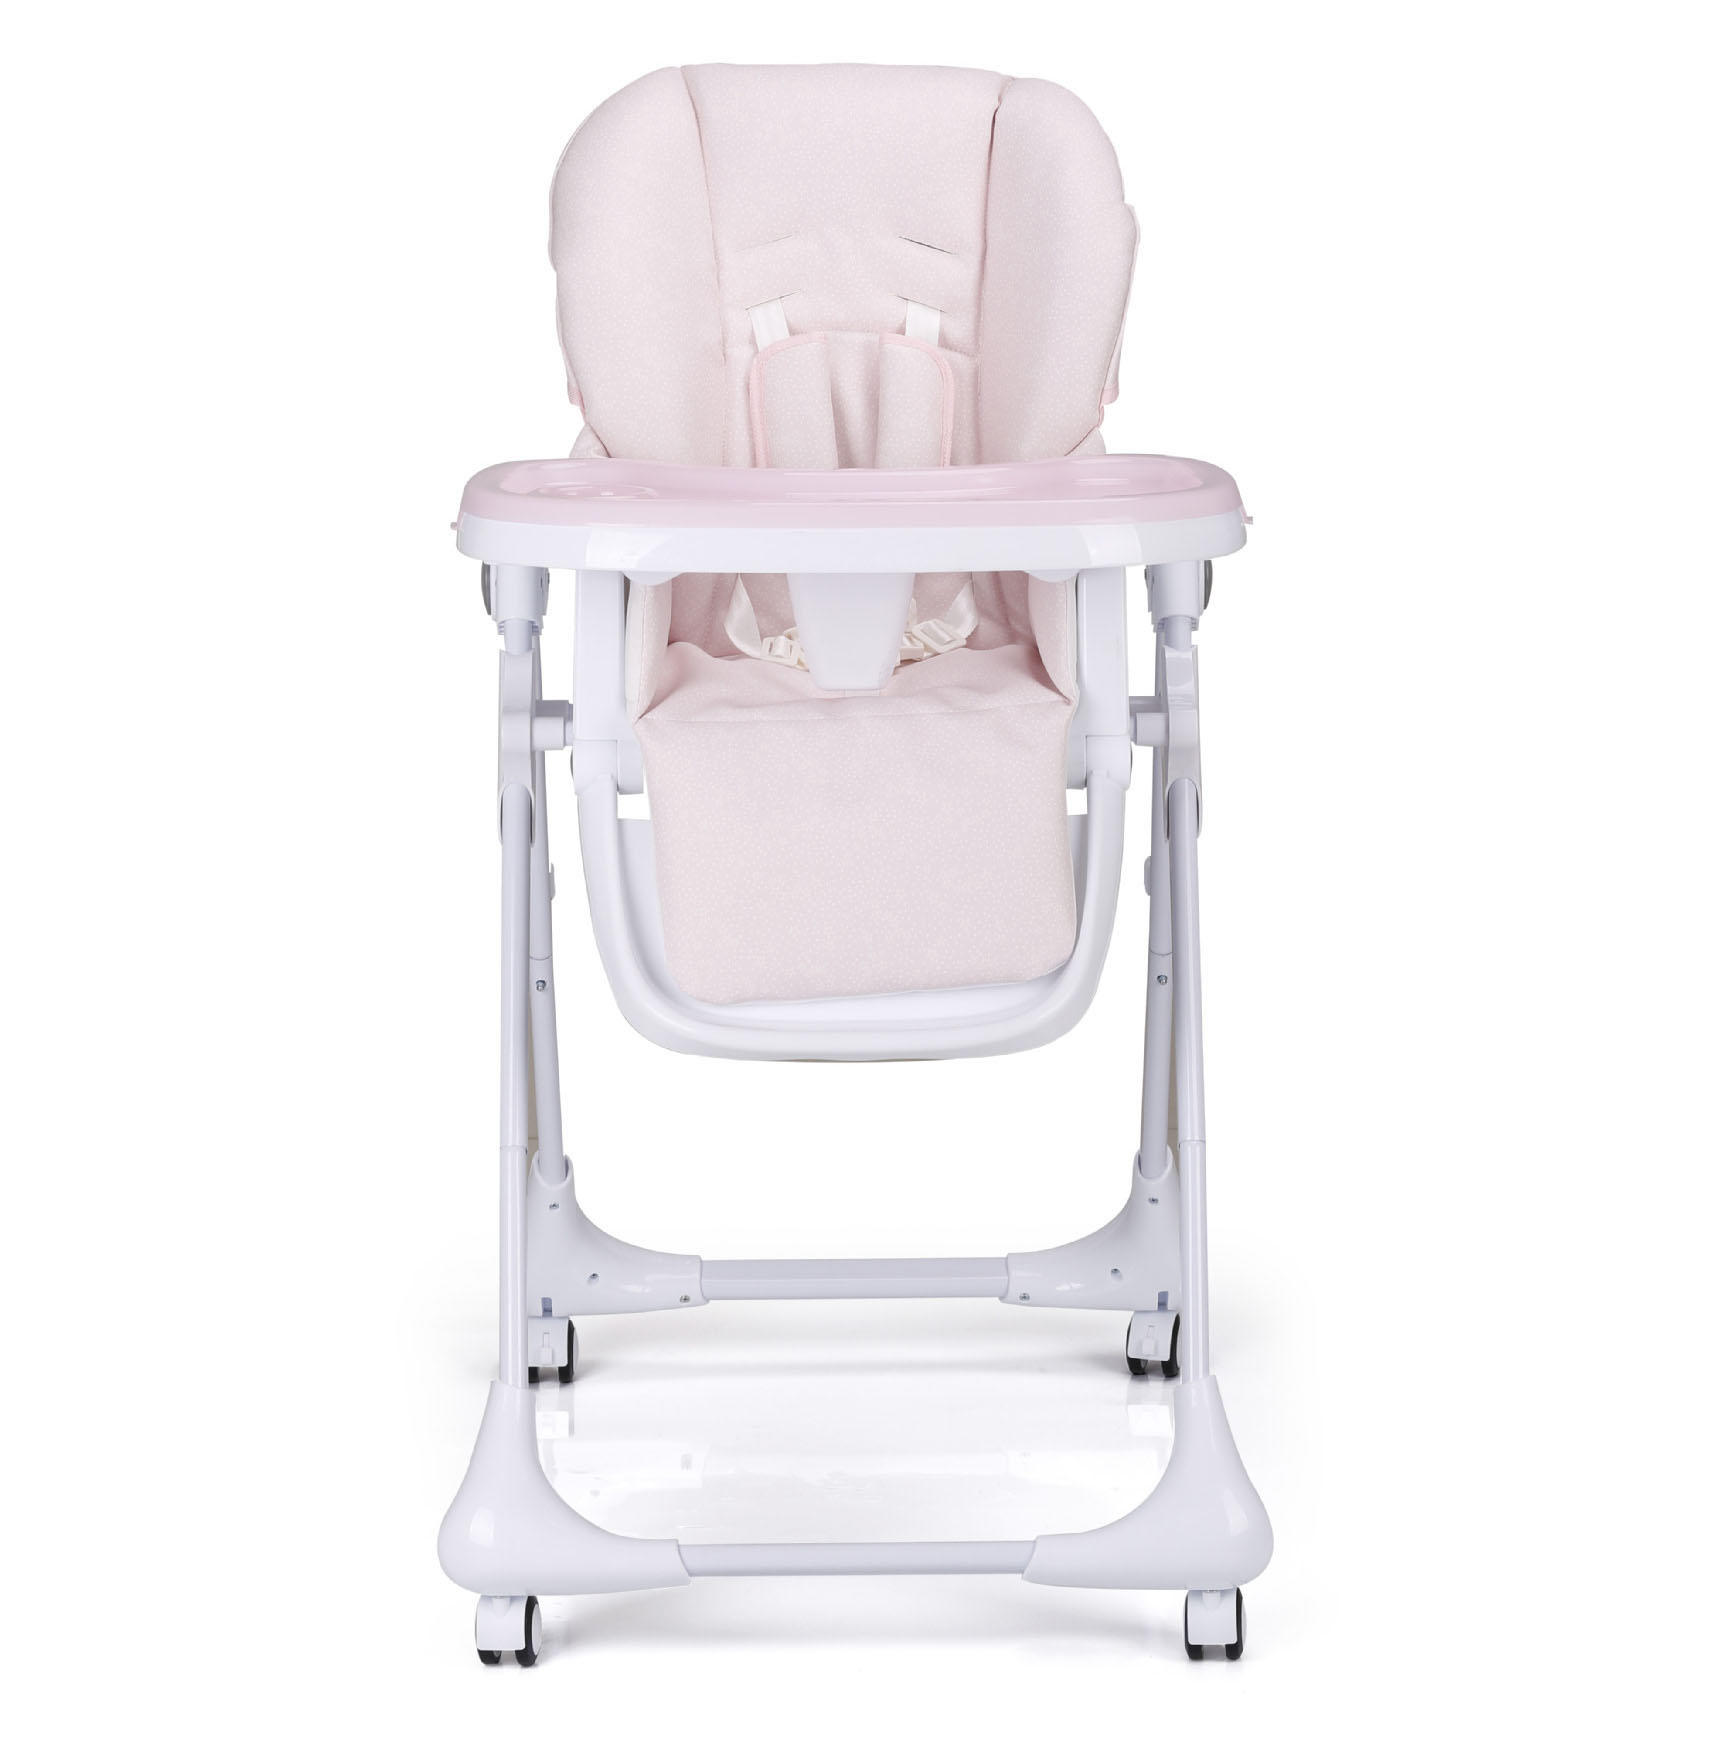 Best inexpensive high chairs comfortable Supply for feeding-2